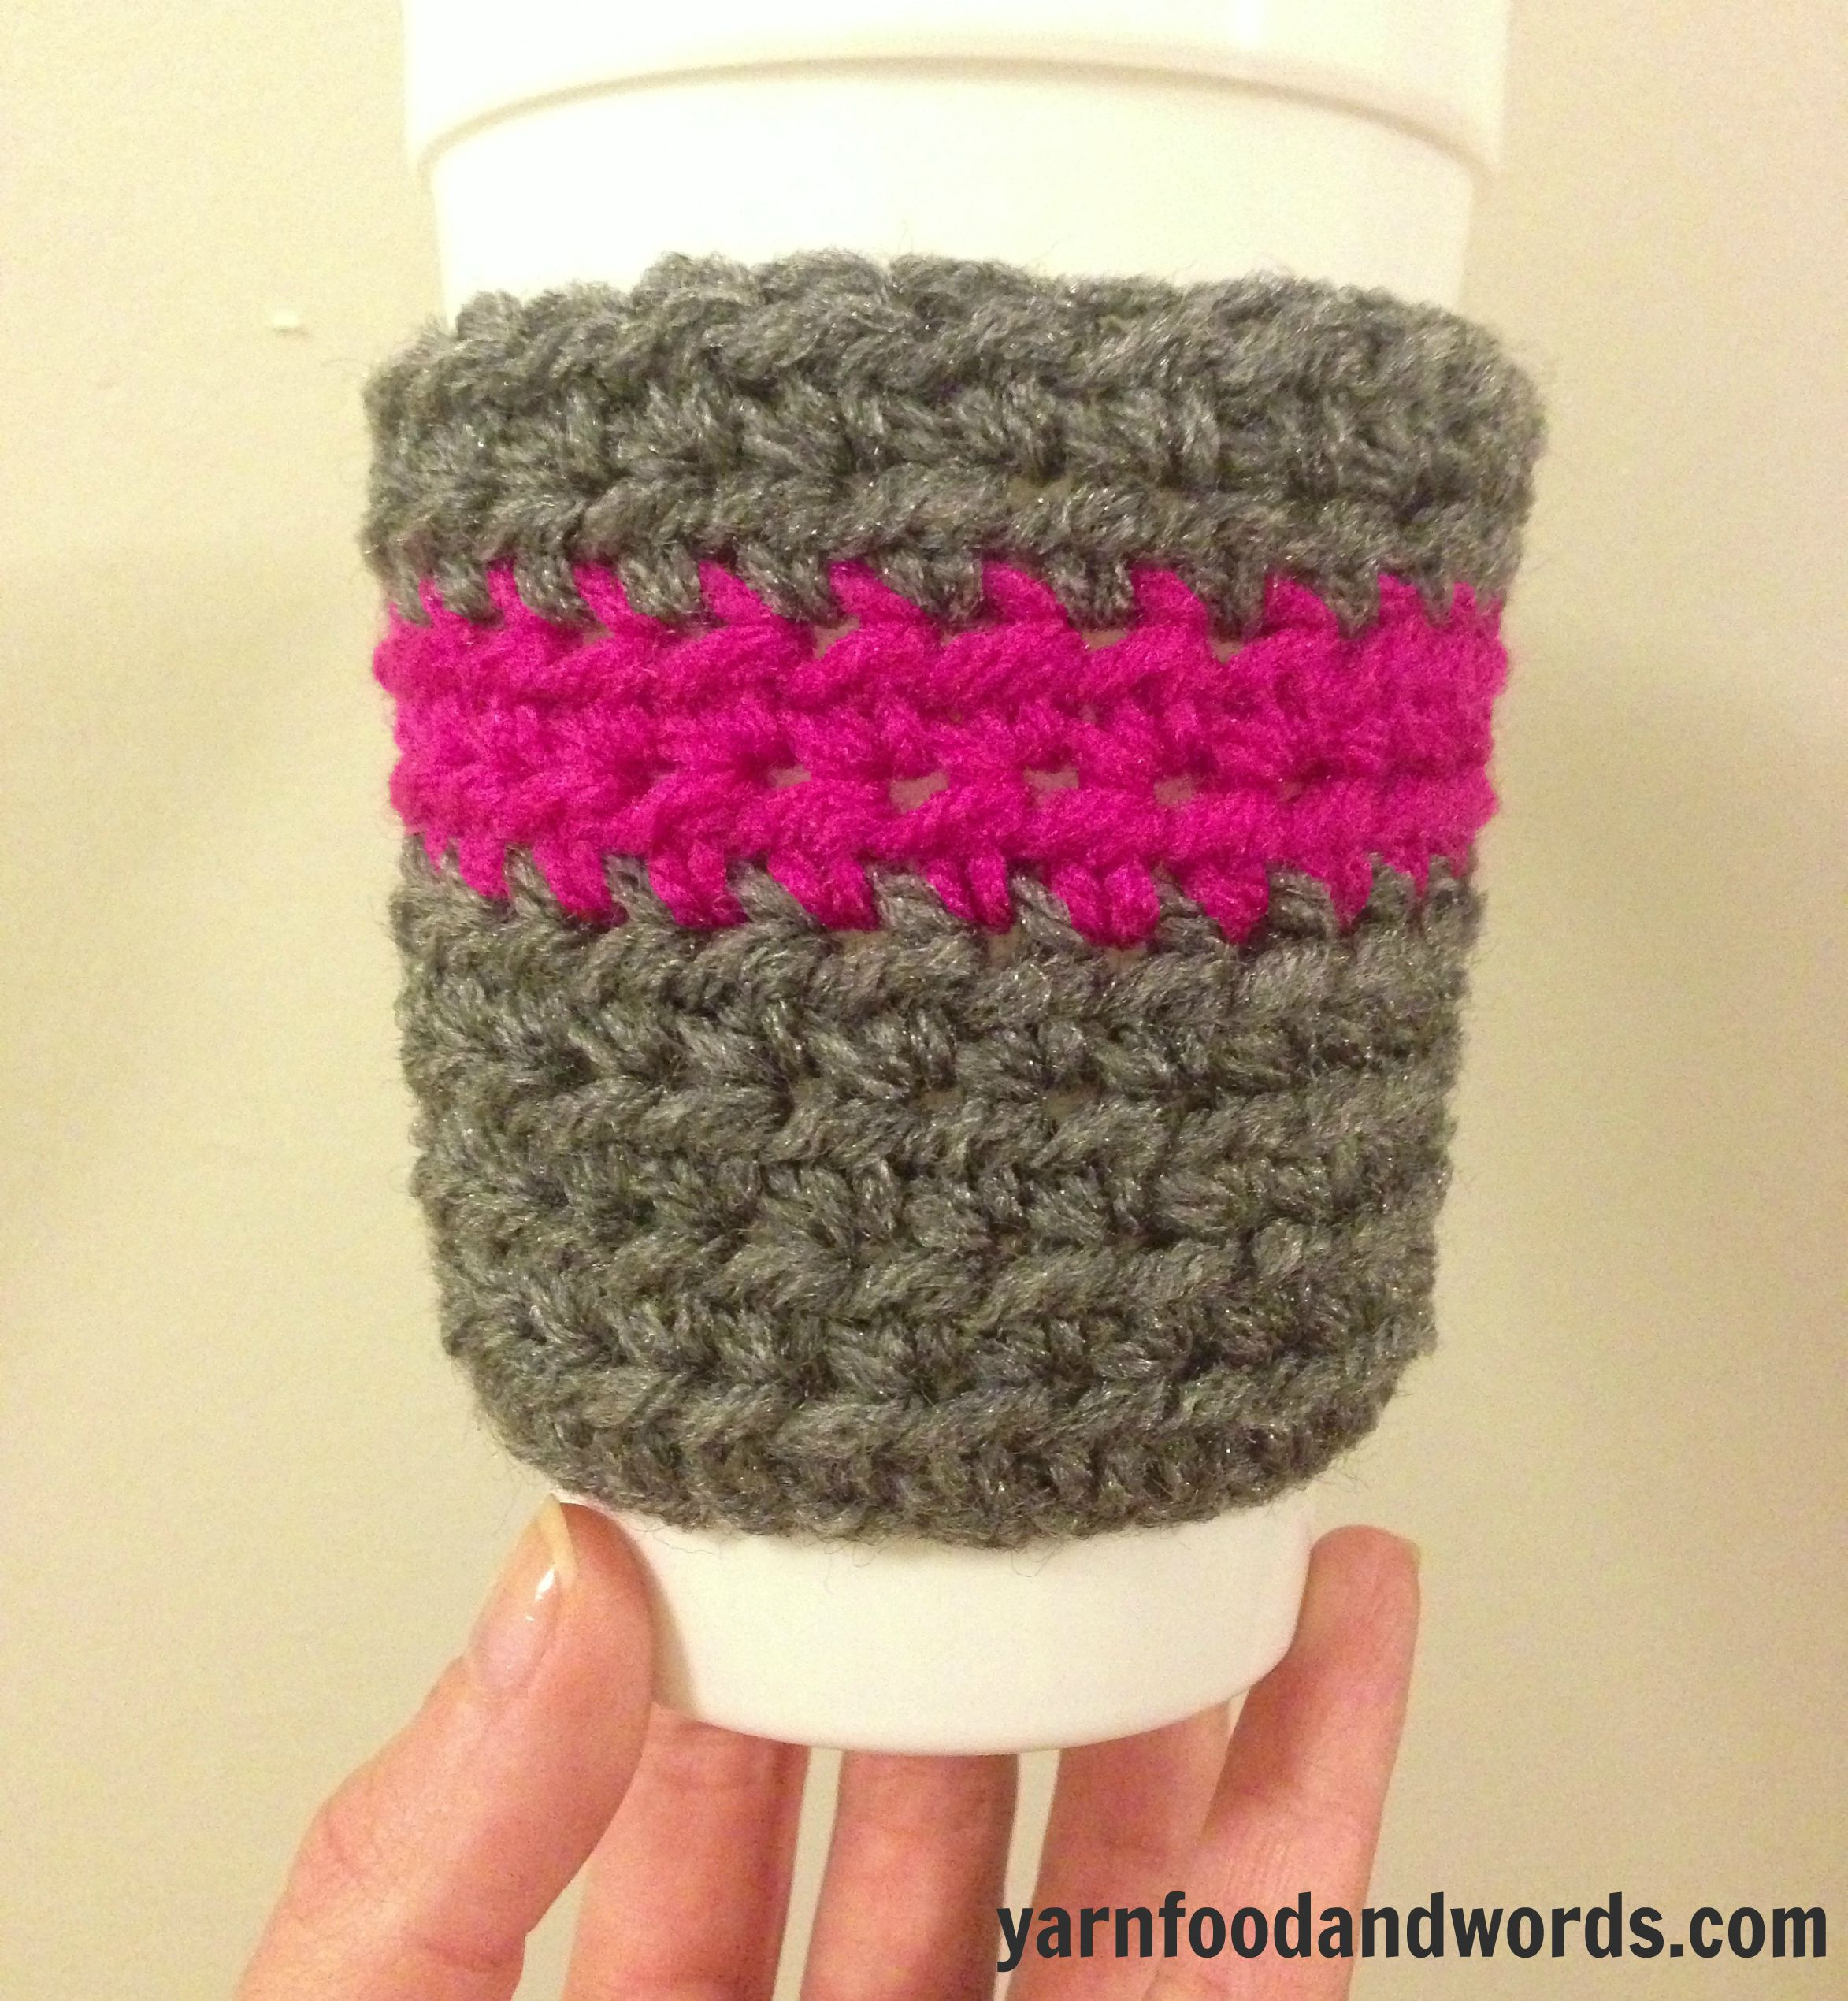 Easy DIY Crochet Coffee Cozy Pattern for Disposable Coffee Cups. Only takes around an hour to complete.